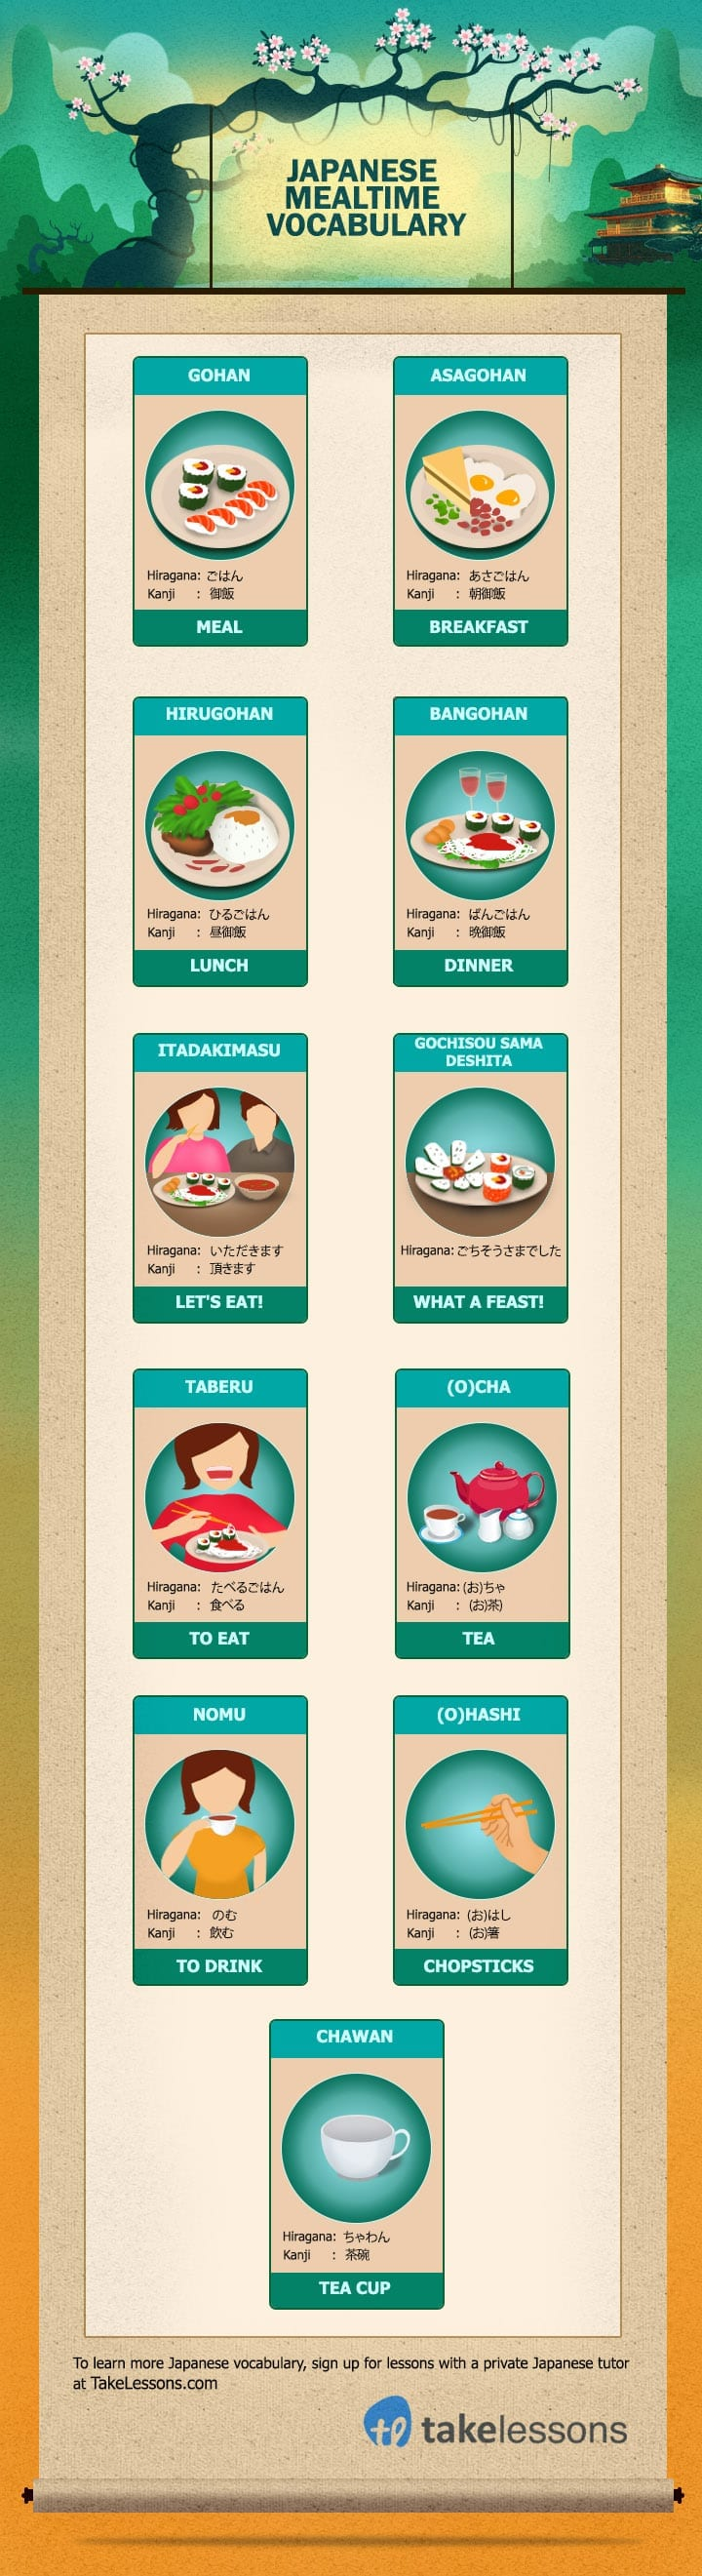 Japanese Vocabulary: 11 Mealtime Words & Expressions